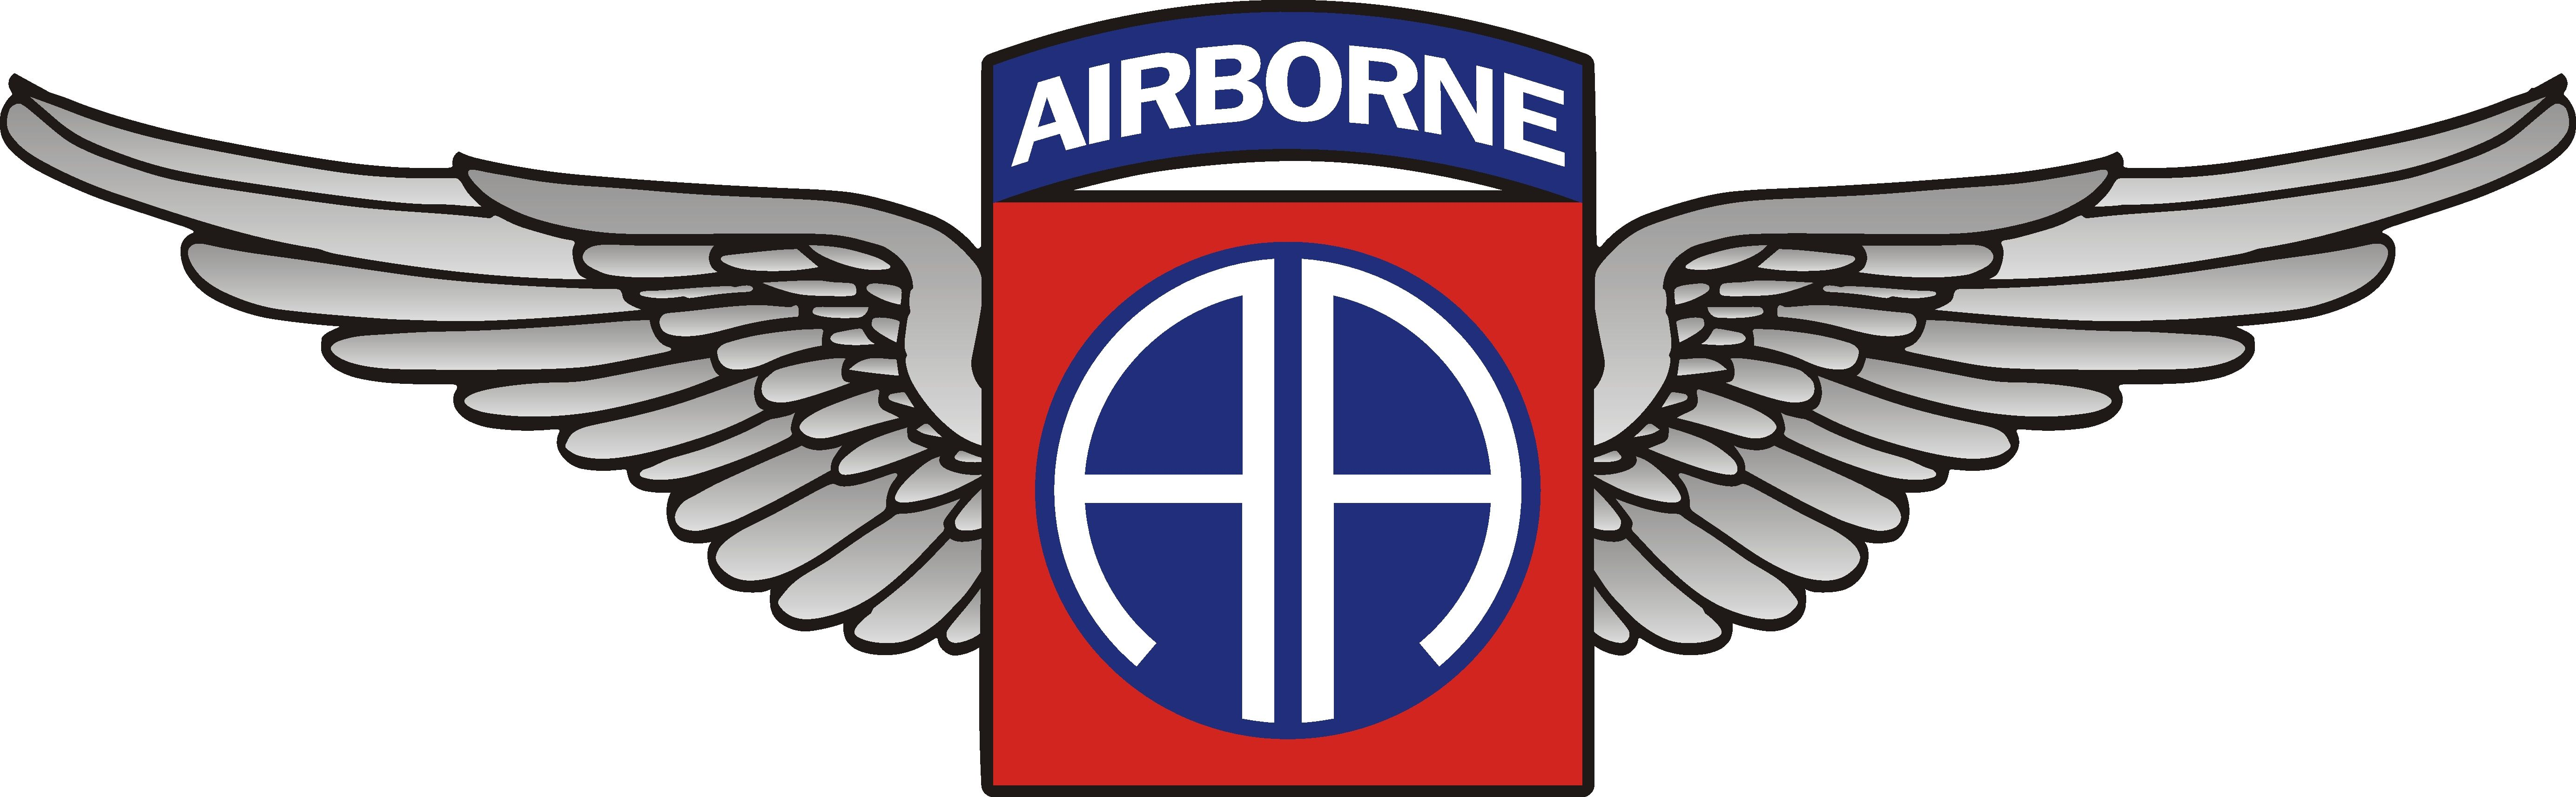 Proudly served with the 82nd Airborne Division.